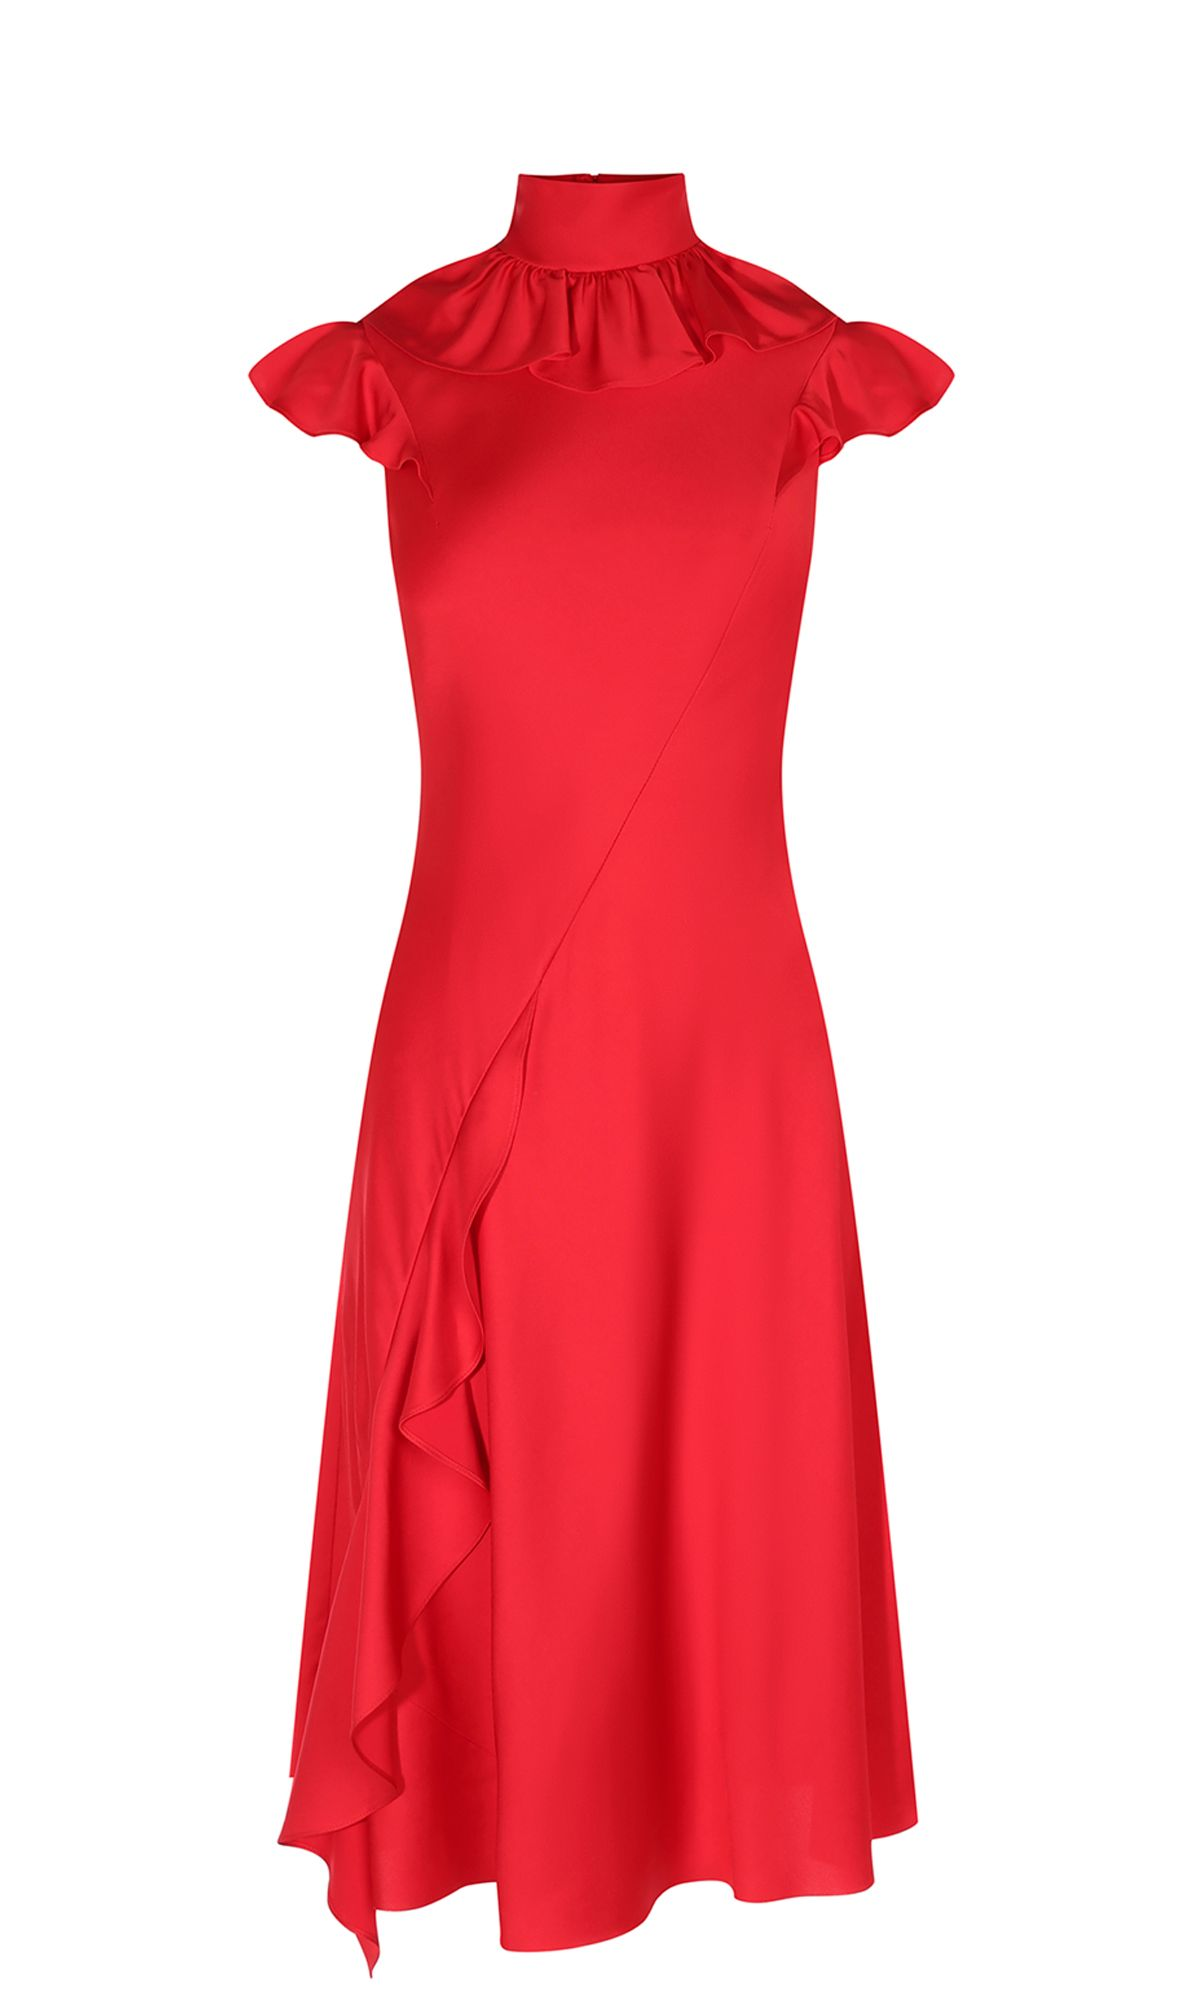 Karen Millen Ruffle Midi Dress, Red